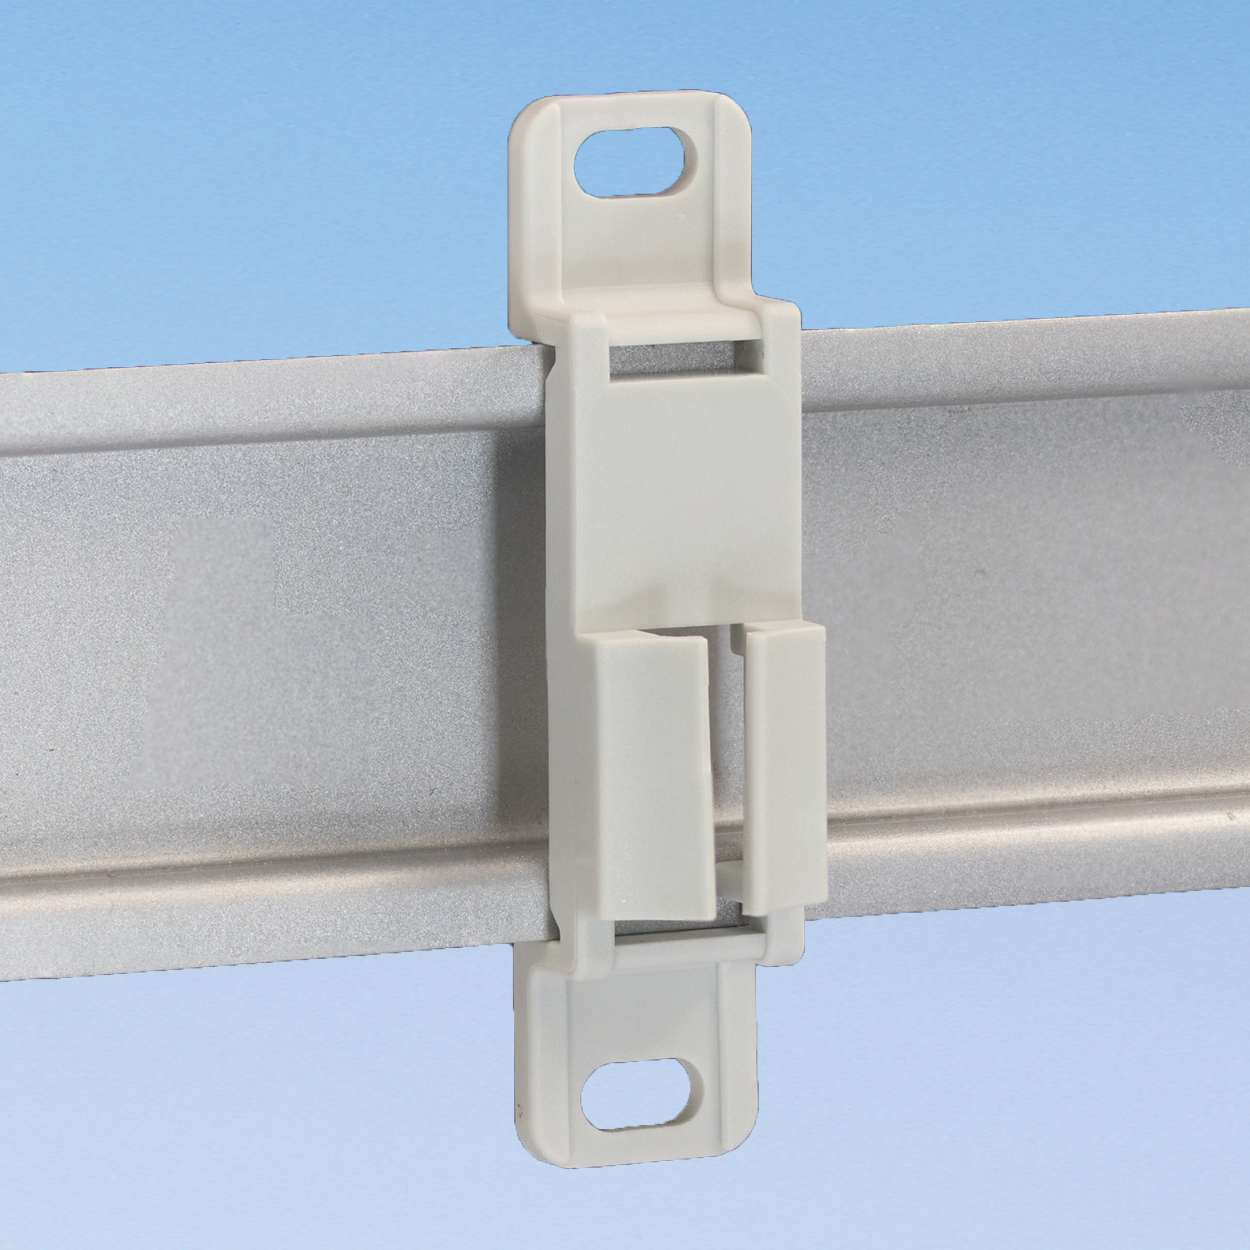 Connection Terminal holder for DIN rails